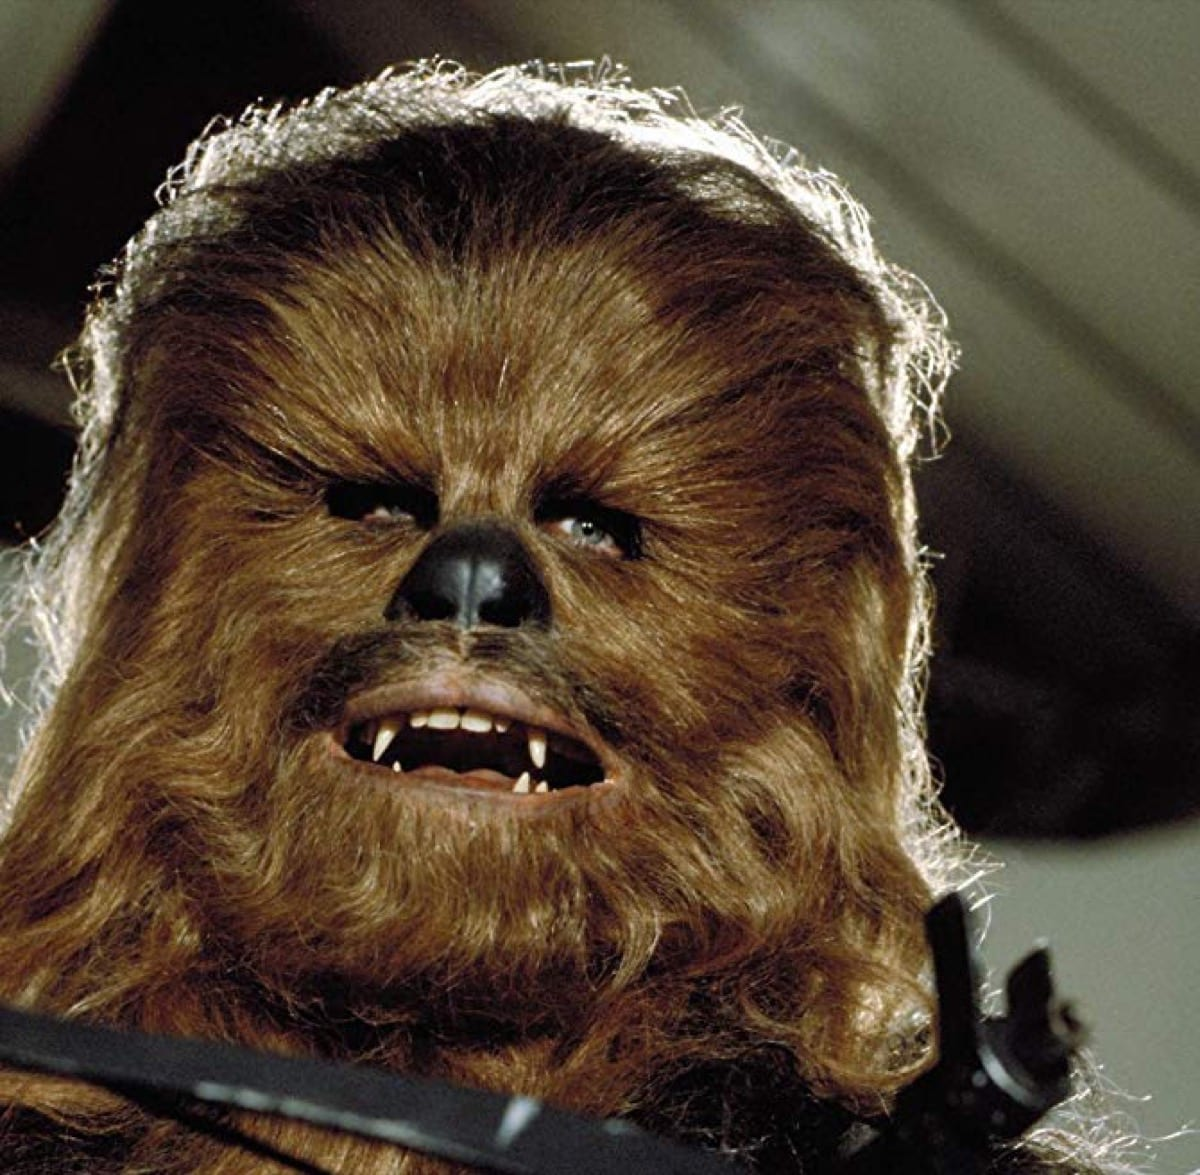 Chewbacca in Return of the Jedi